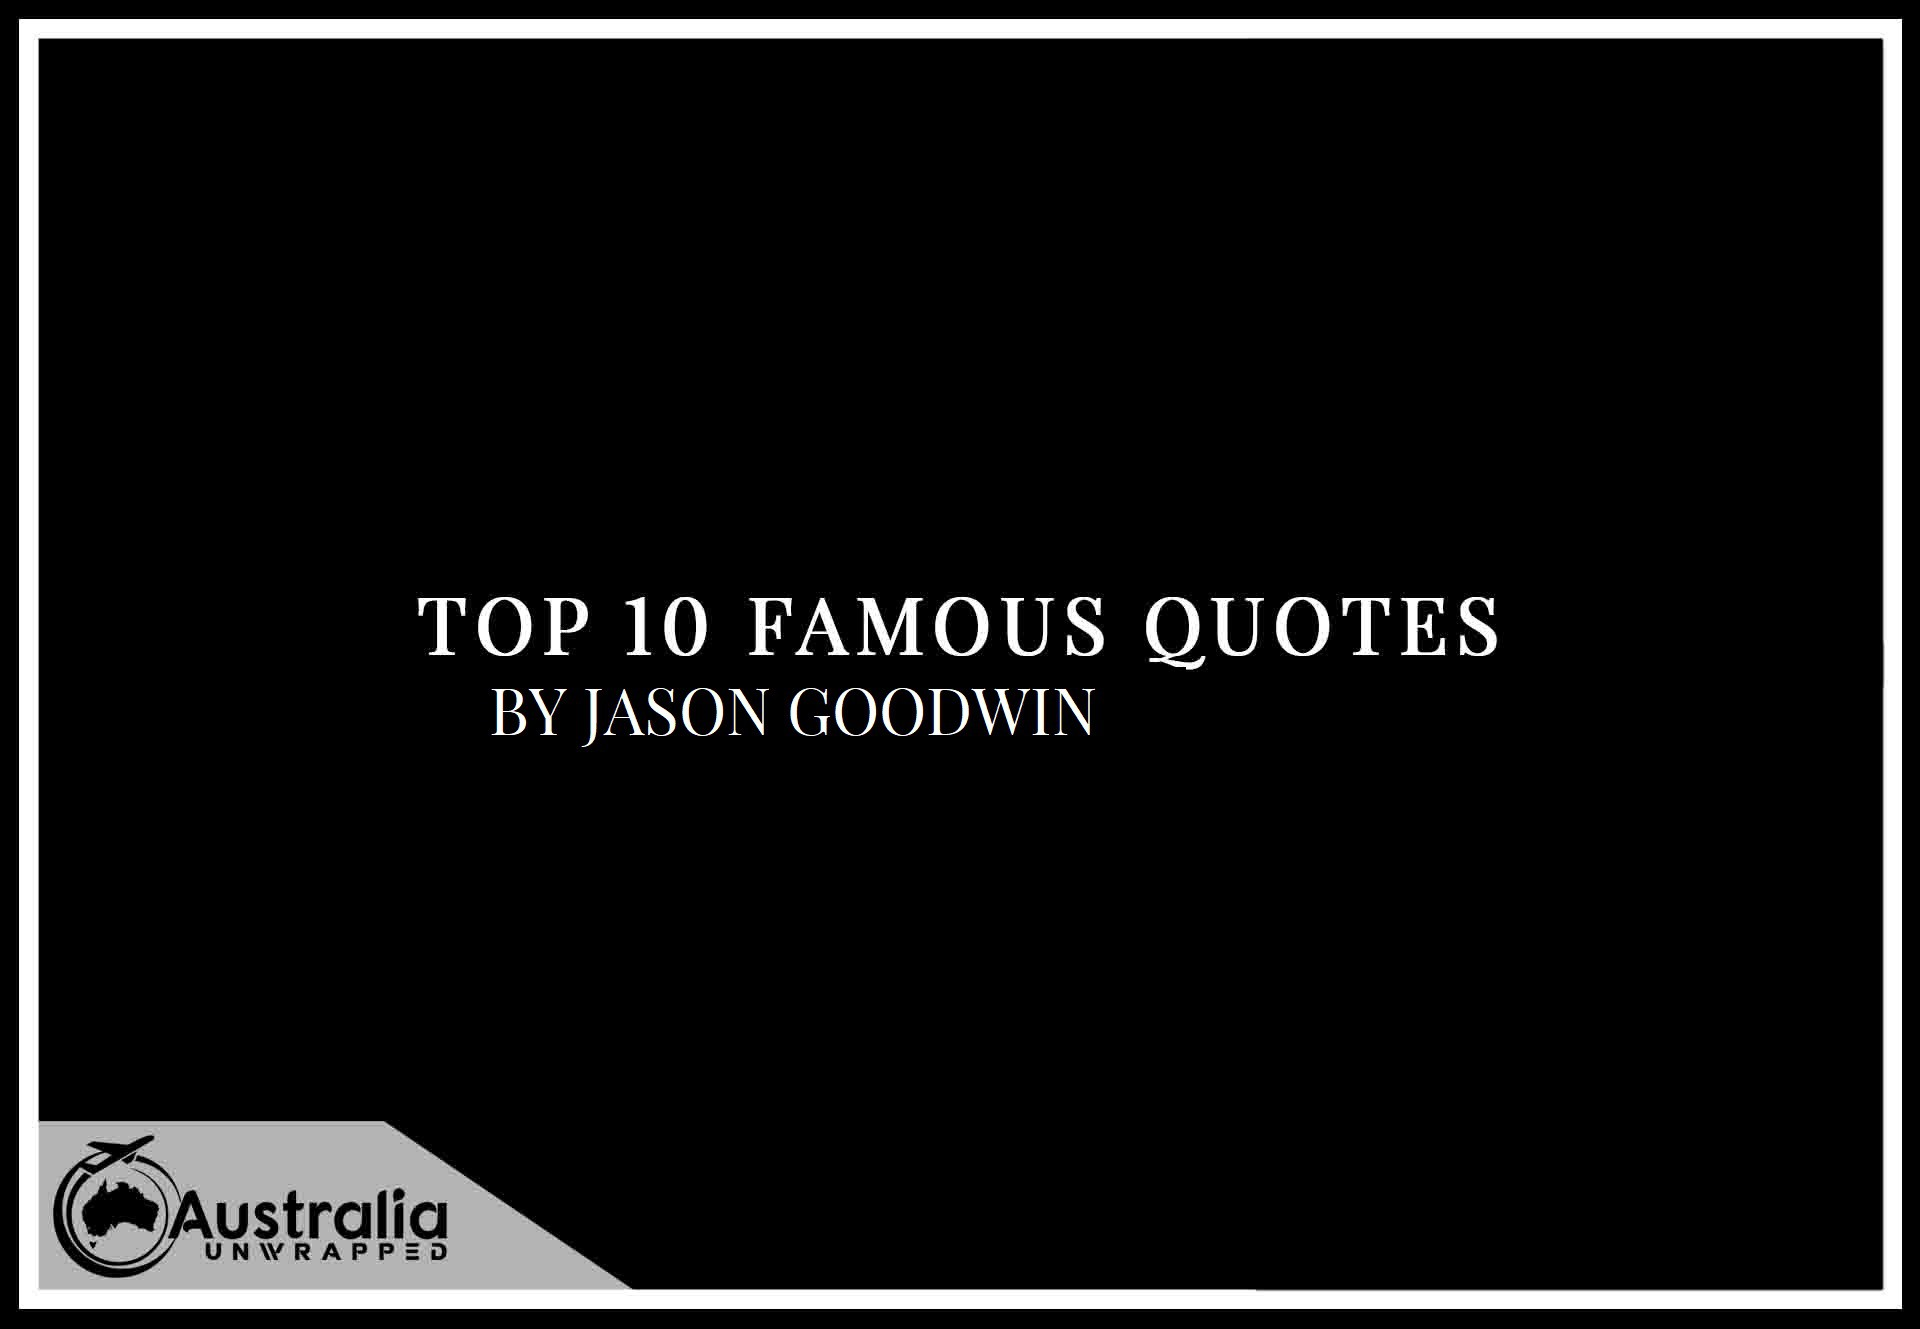 Top 10 Famous Quotes by Author Jason Goodwin